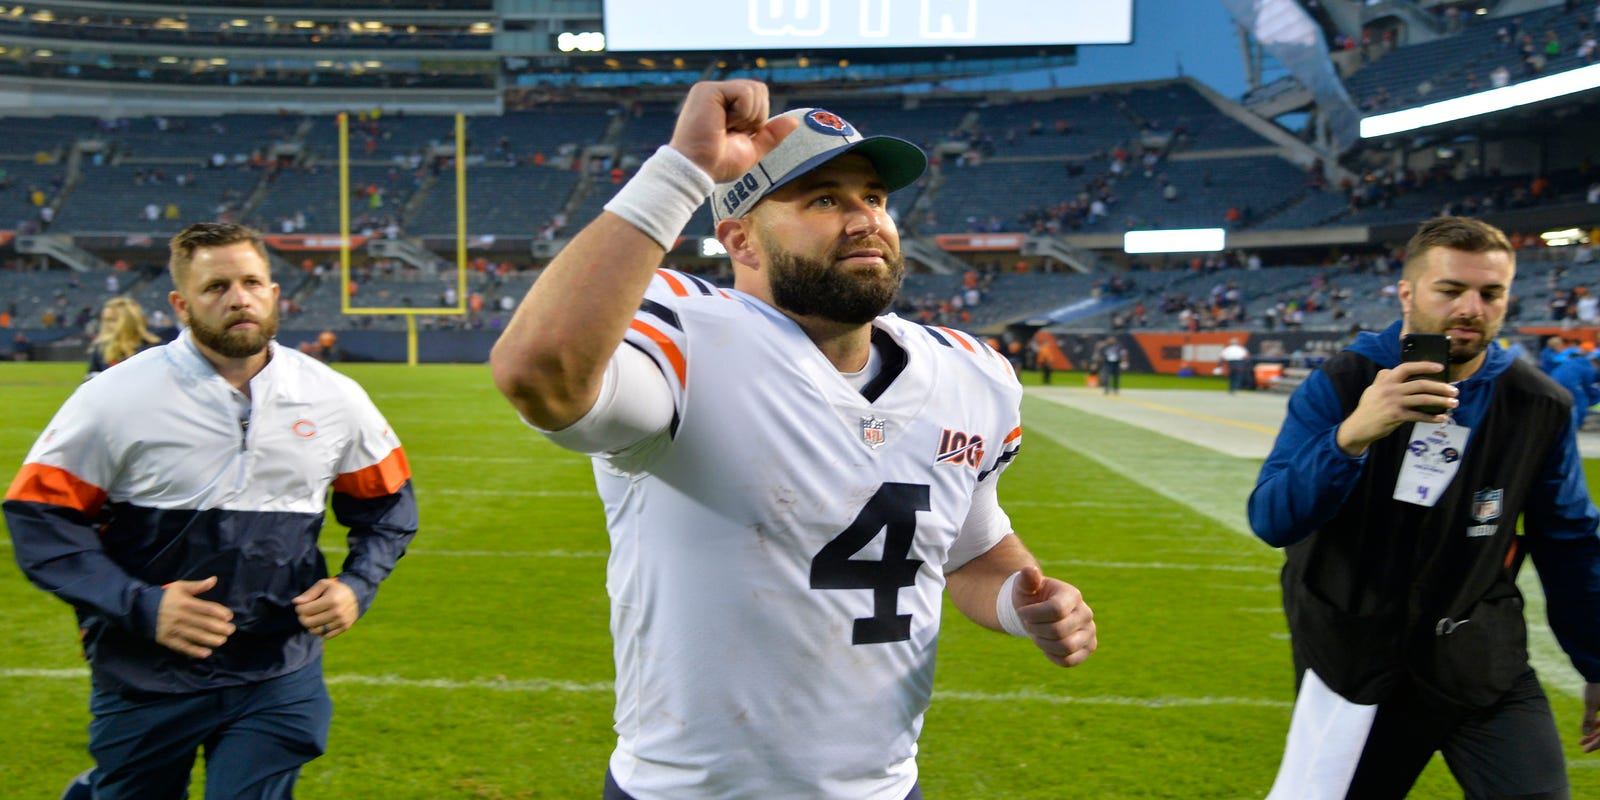 Chase Daniel will make Detroit Lions' locker room 'better.' Just ask his college coach